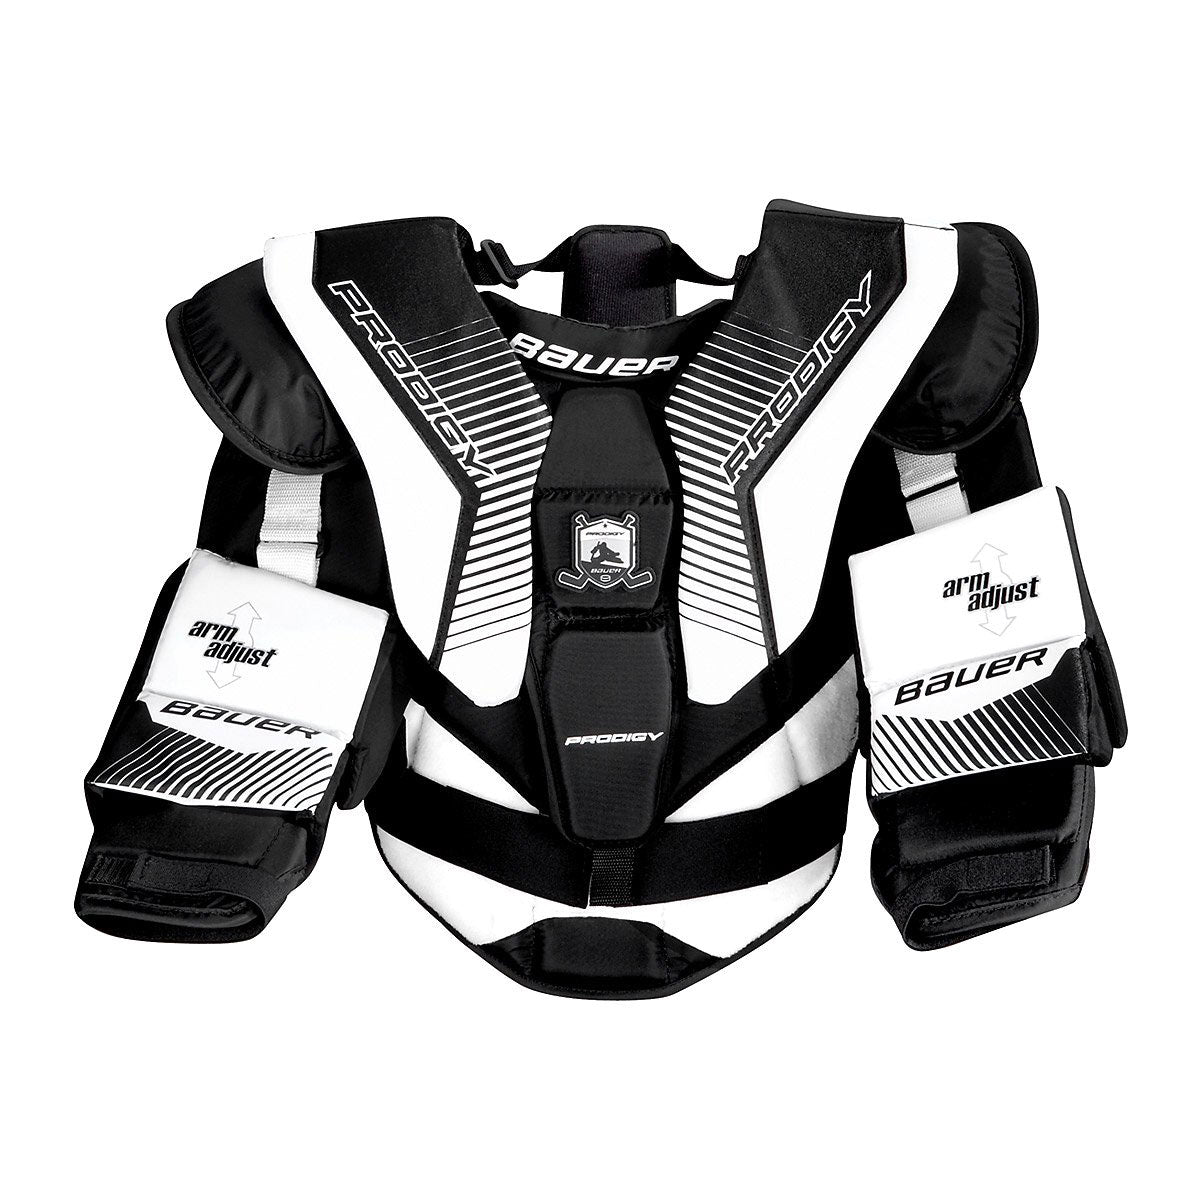 Bauer Prodigy 3.0 Youth Chest & Arm Protectors